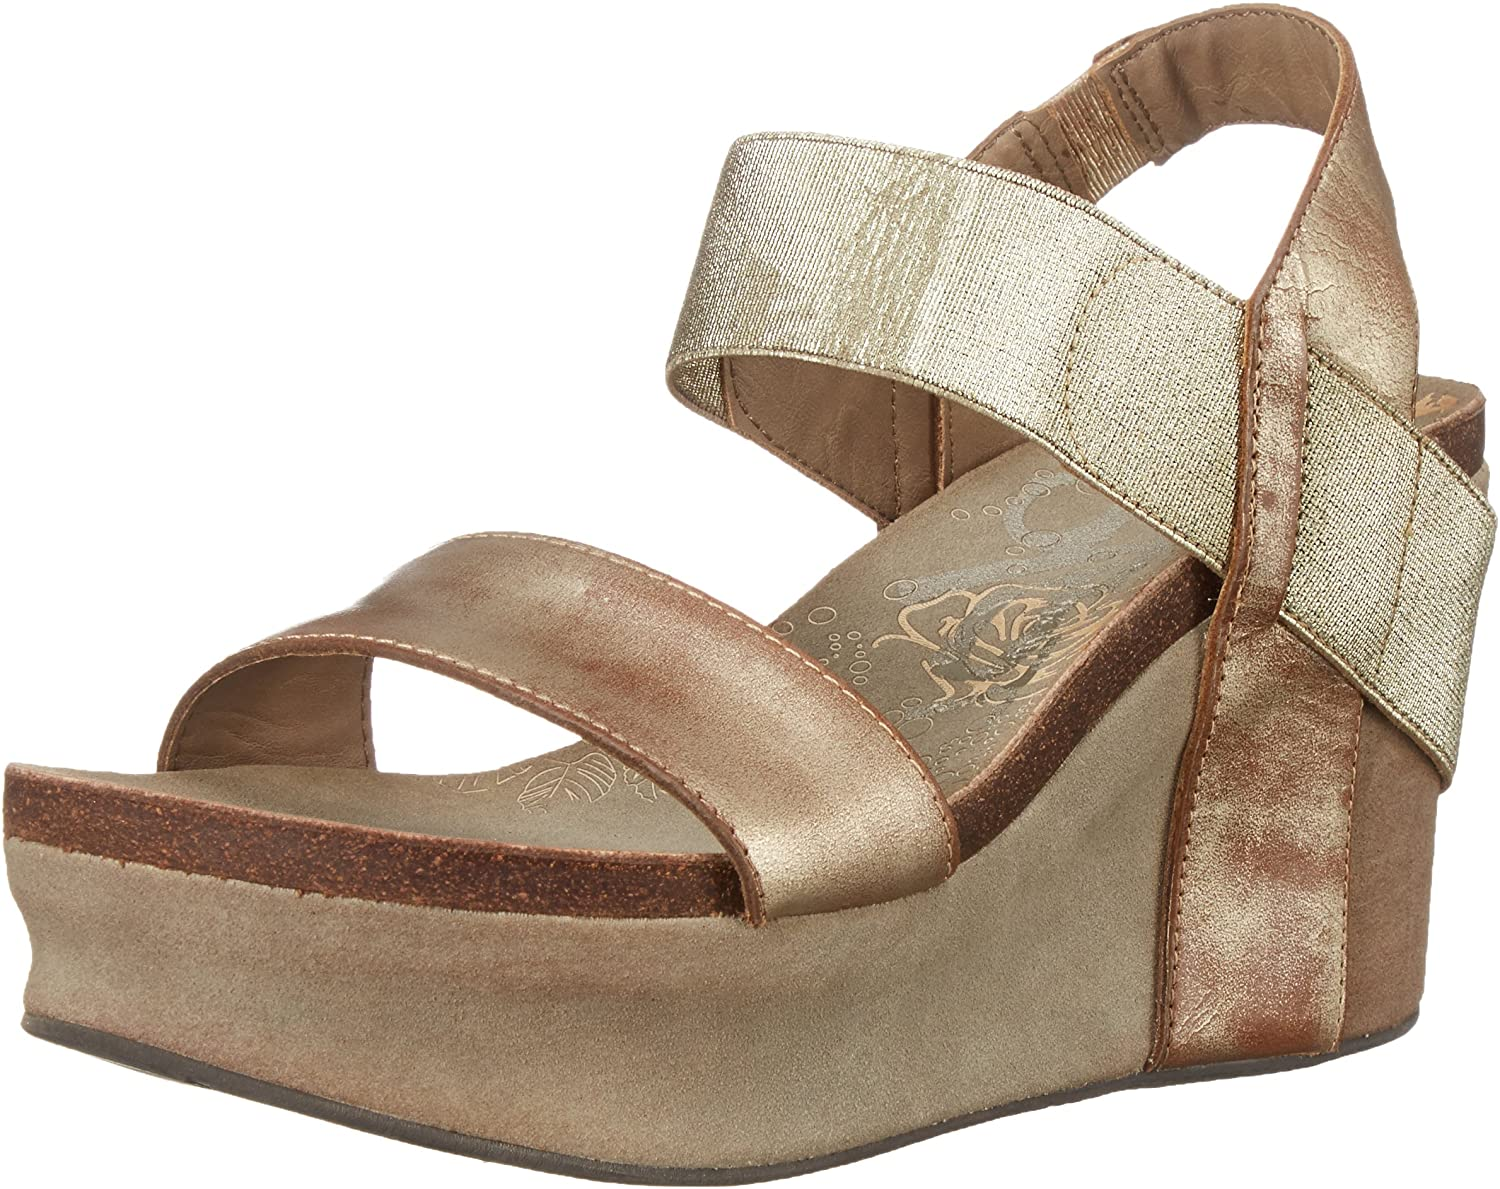 OTBT Women's Bushnell 70% OFF Attention brand Outlet Wedge Sandals